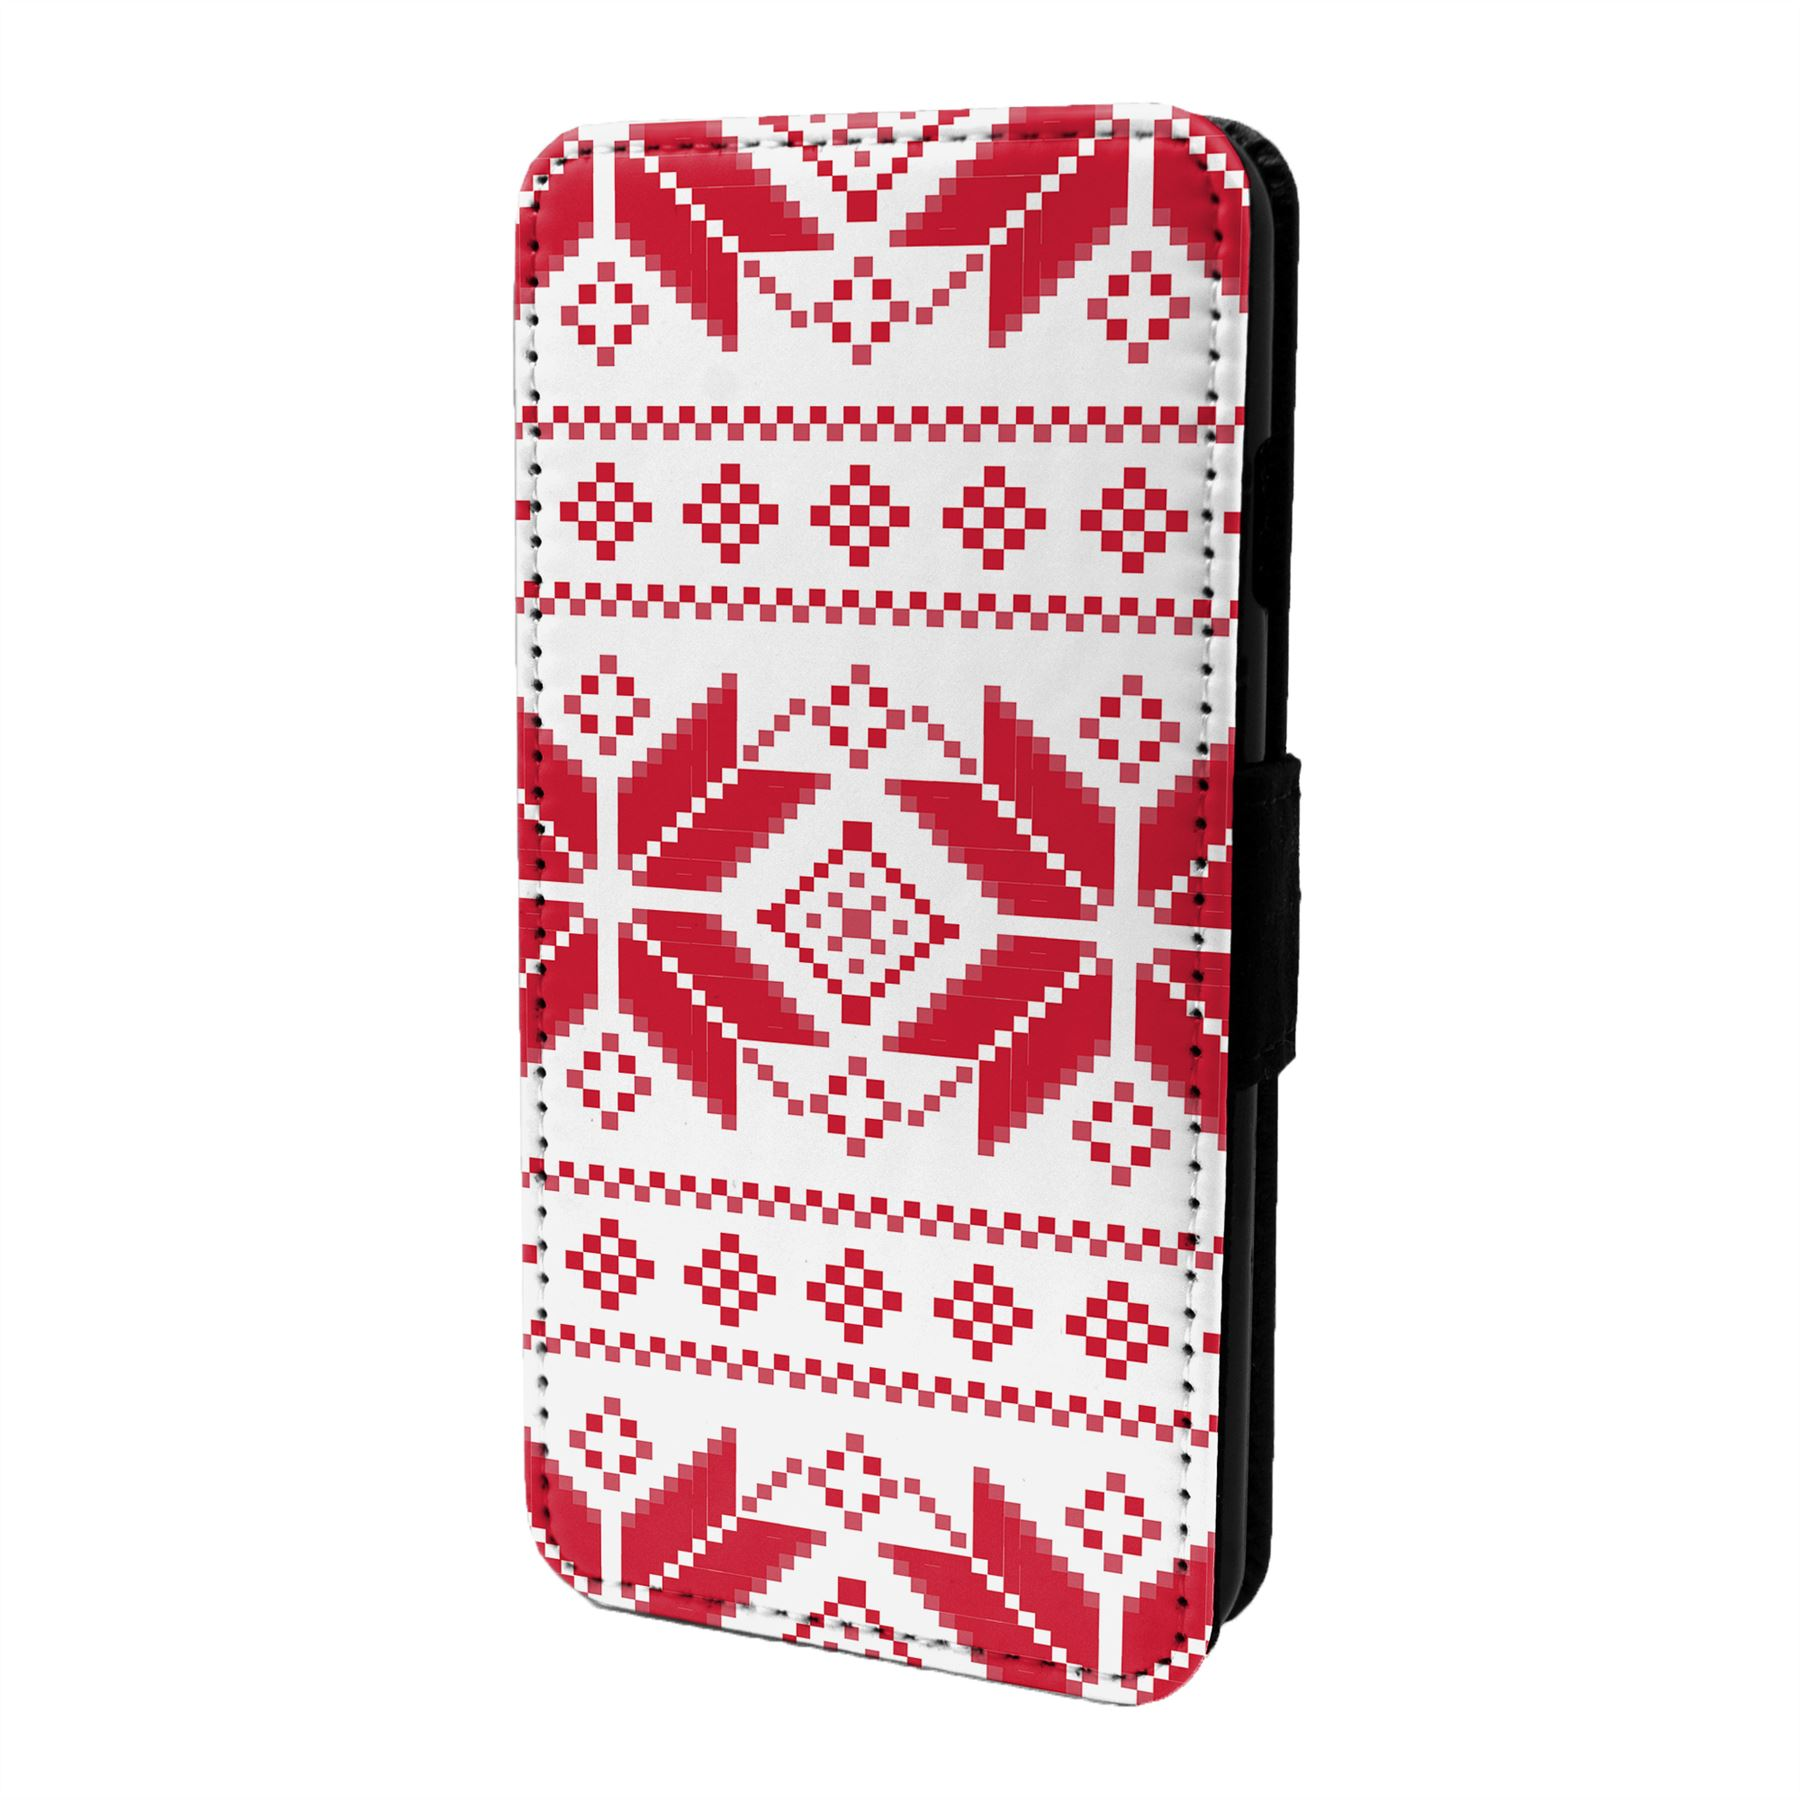 Nordico-Estampado-Funda-Libro-para-Telefono-Movil-S6987